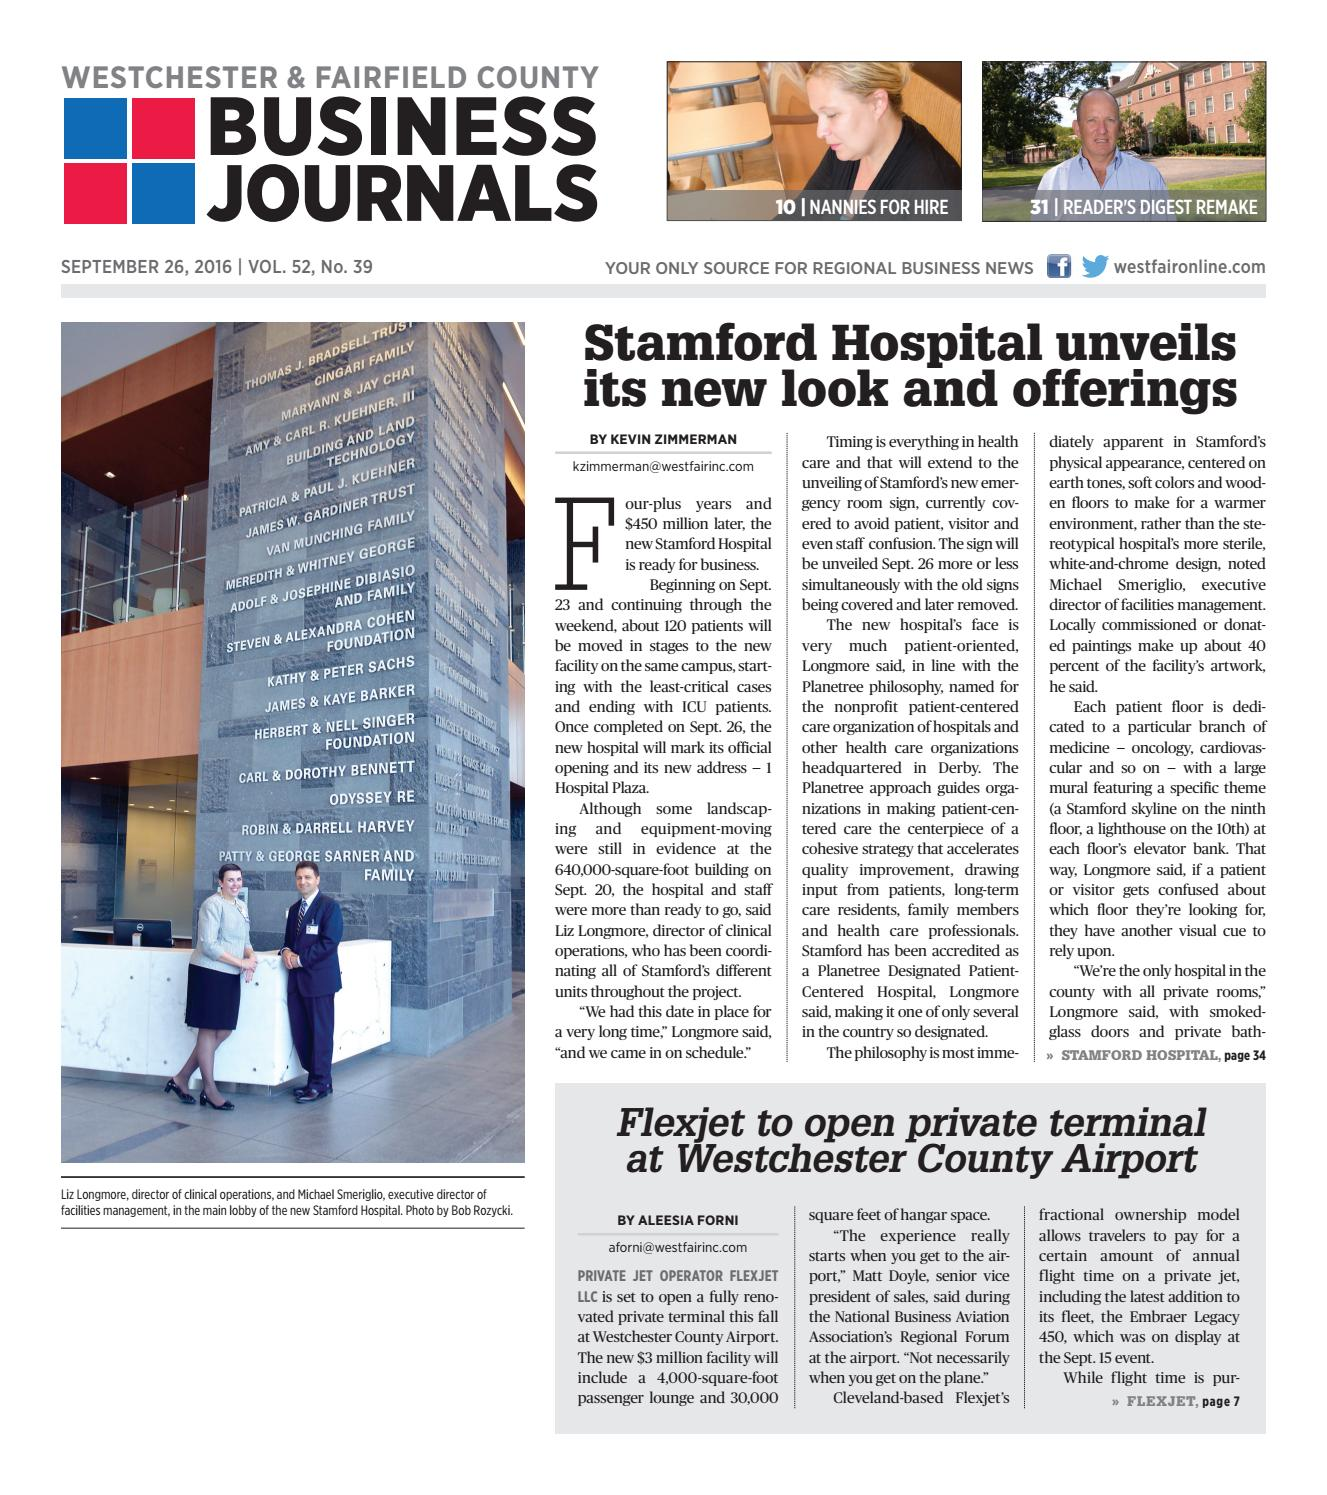 westchester fairfield county business journals 092616 by wag